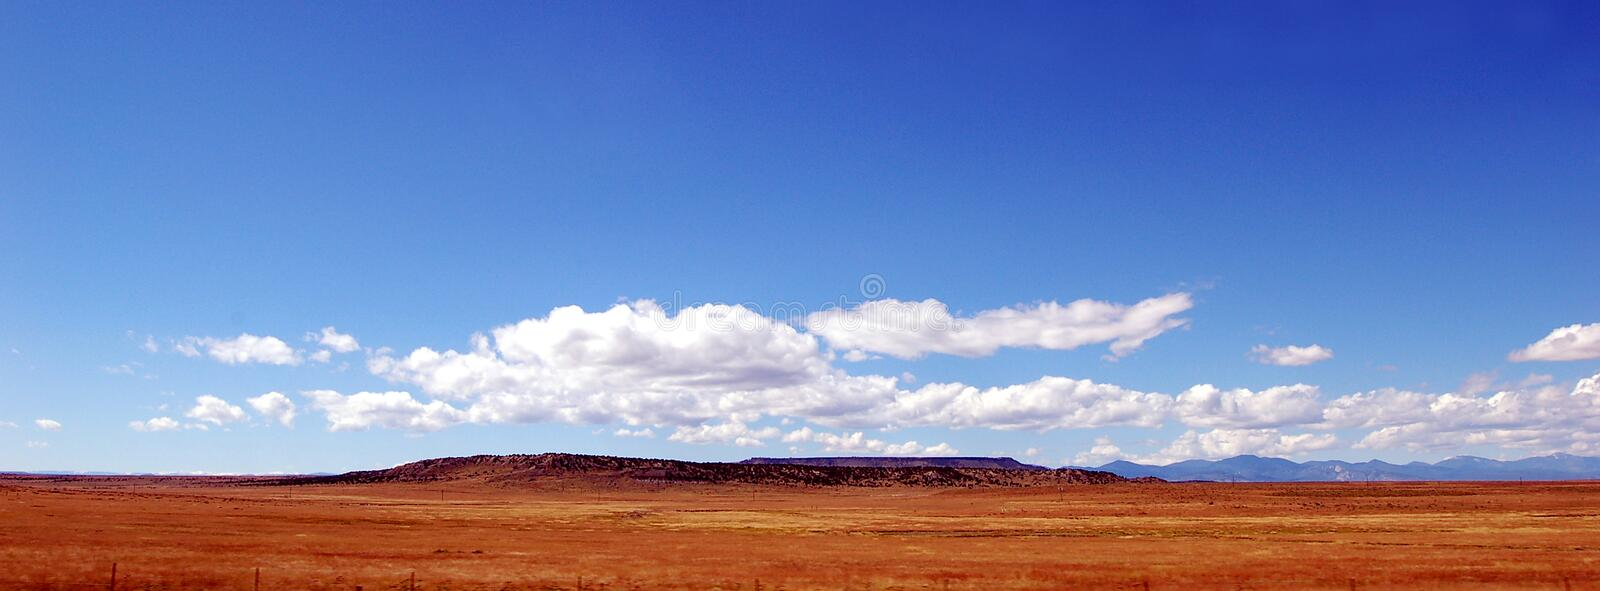 Big Blue Sky Golden Prairie. Colorado prairie with a mesa on the horizon under a blue sky and floating white clouds royalty free stock images